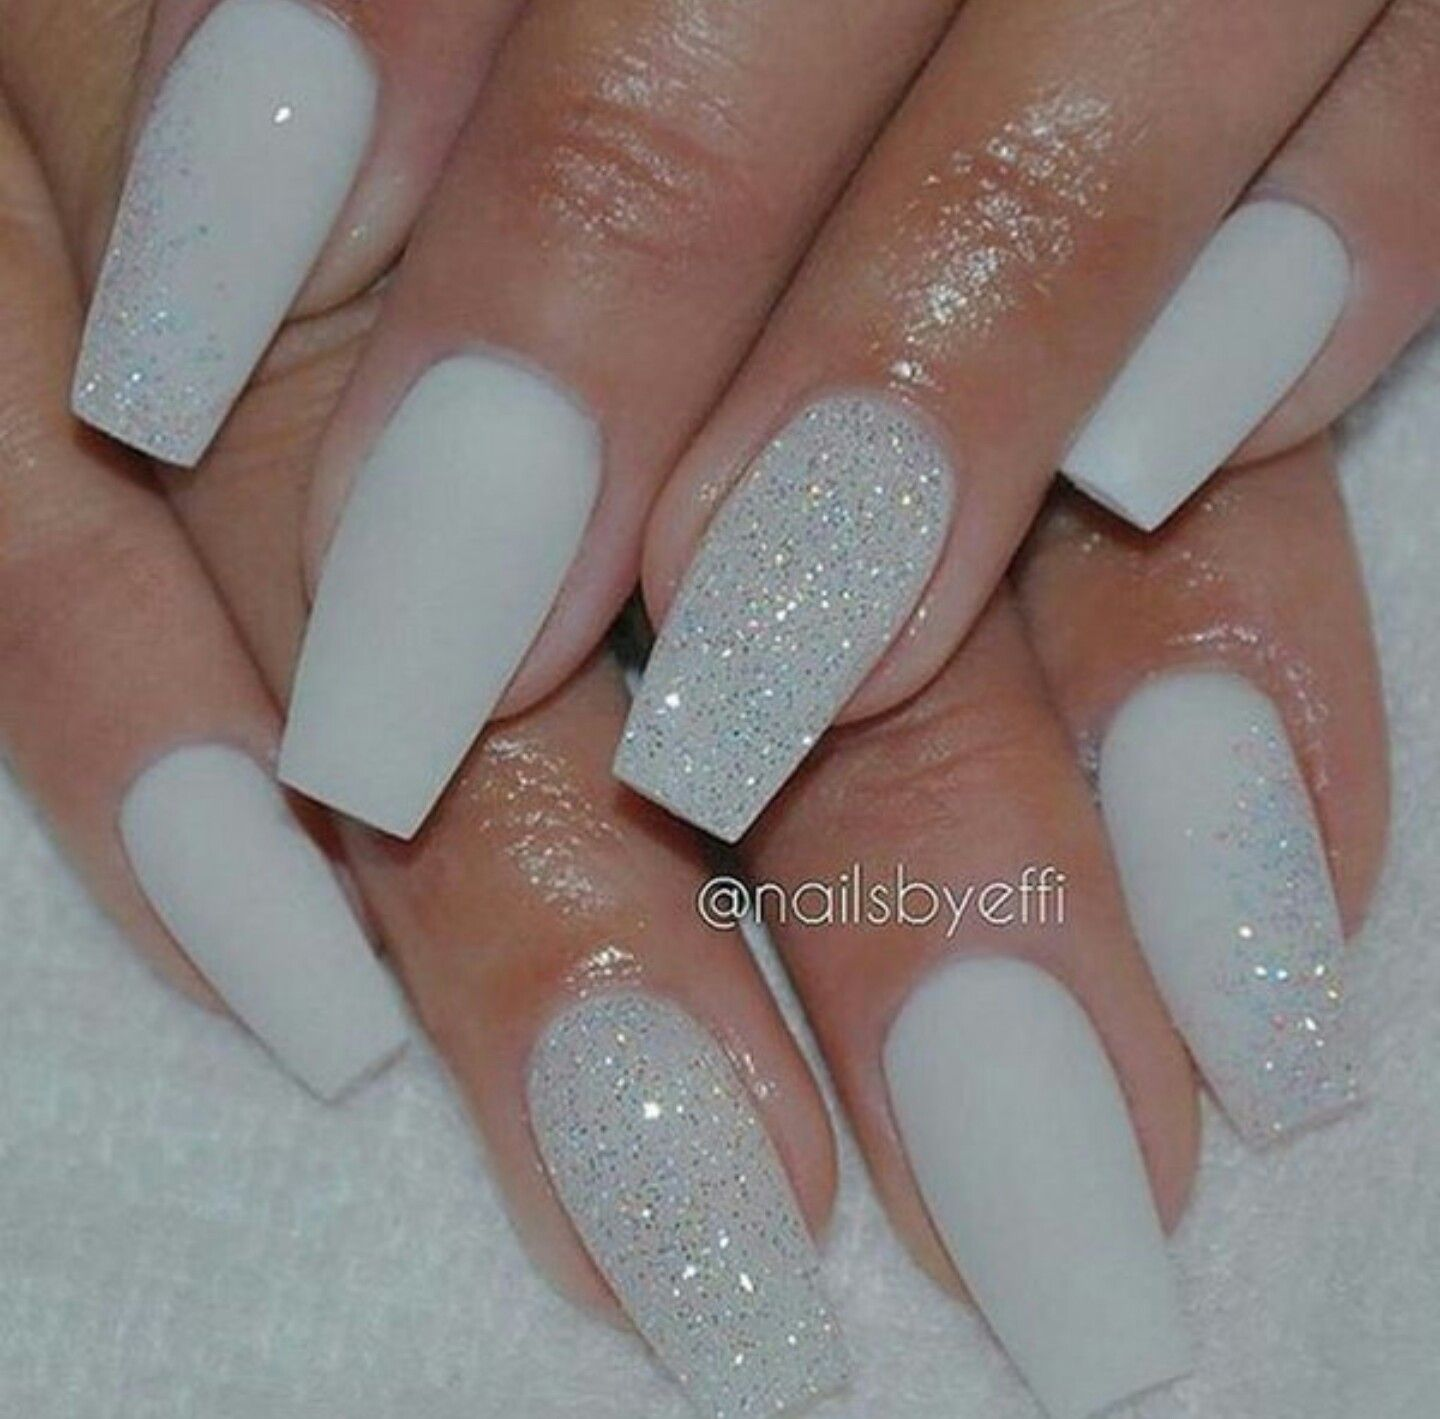 Pin von Valerie nav auf Nails | Pinterest | Nageldesign, Nagelschere ...